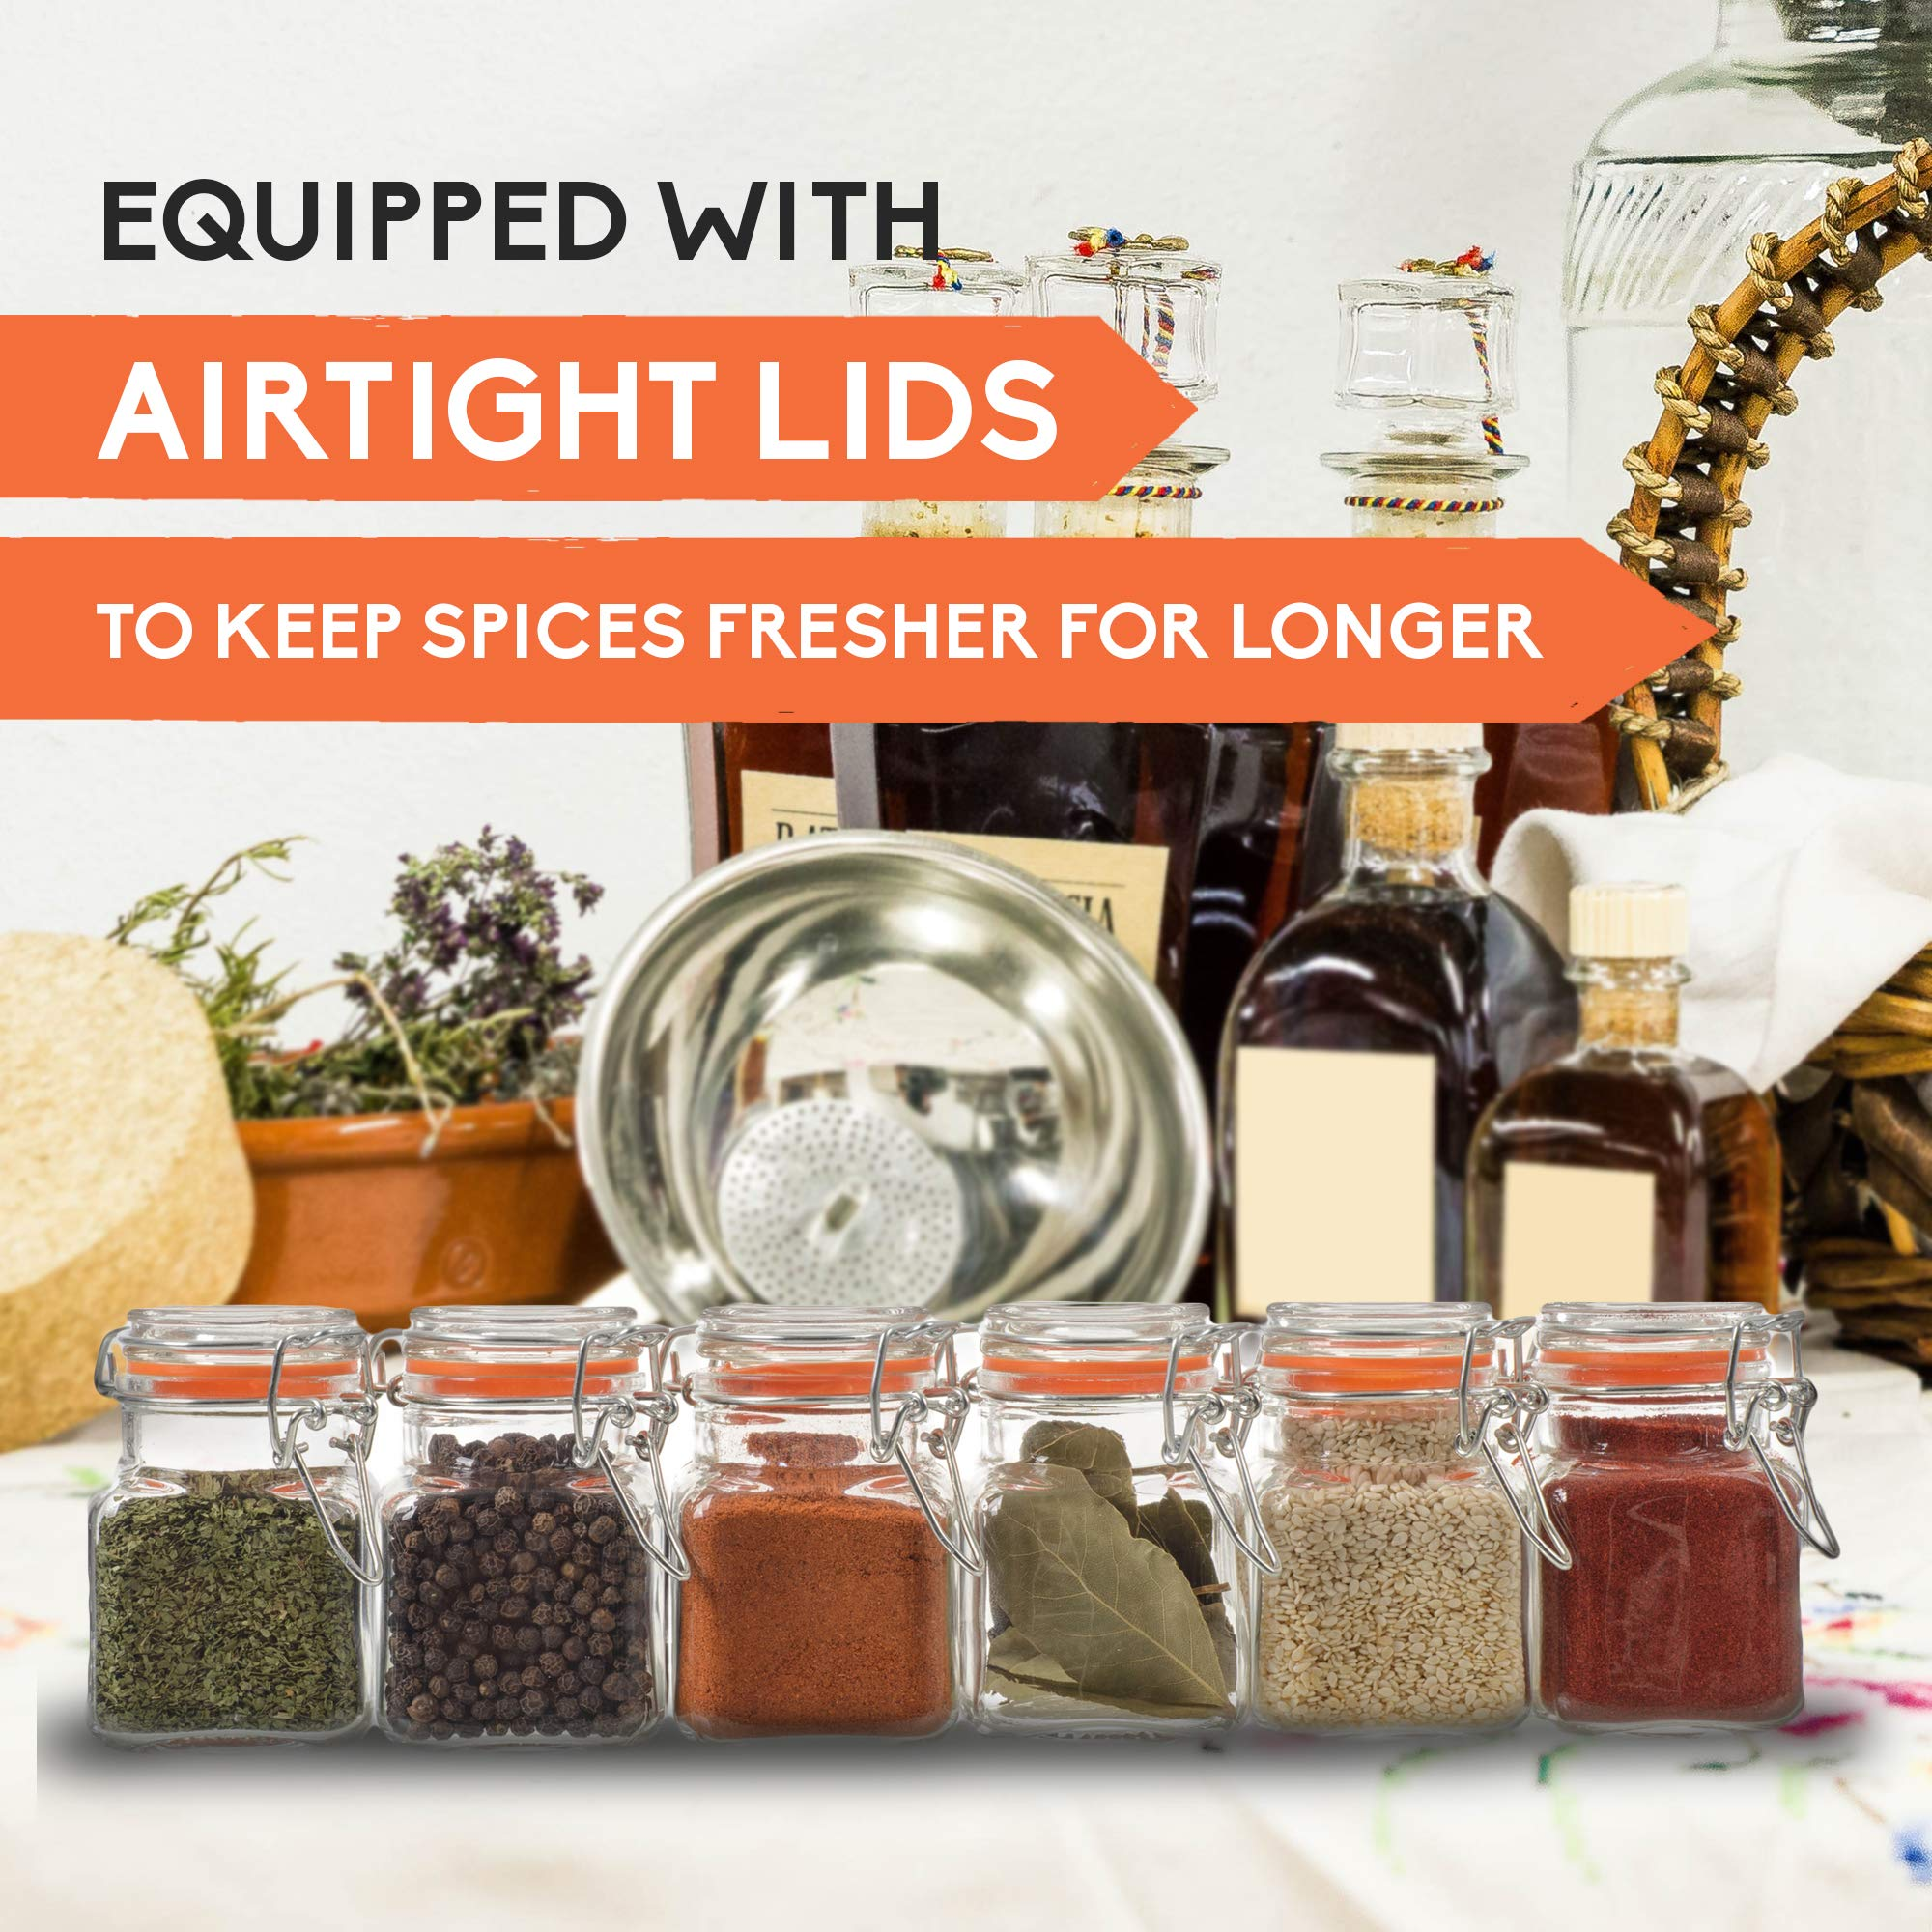 24 Count 3.4 oz Spice Jars Glass Jar with Airtight Lid, Mini Square Glass Spice Jars, Empty Spice Bottles with Labels, Dried Herbs Jars, Glass Apothecary Jars with Lids, Small Glass Spice Containers24 by California Home Goods (Image #4)